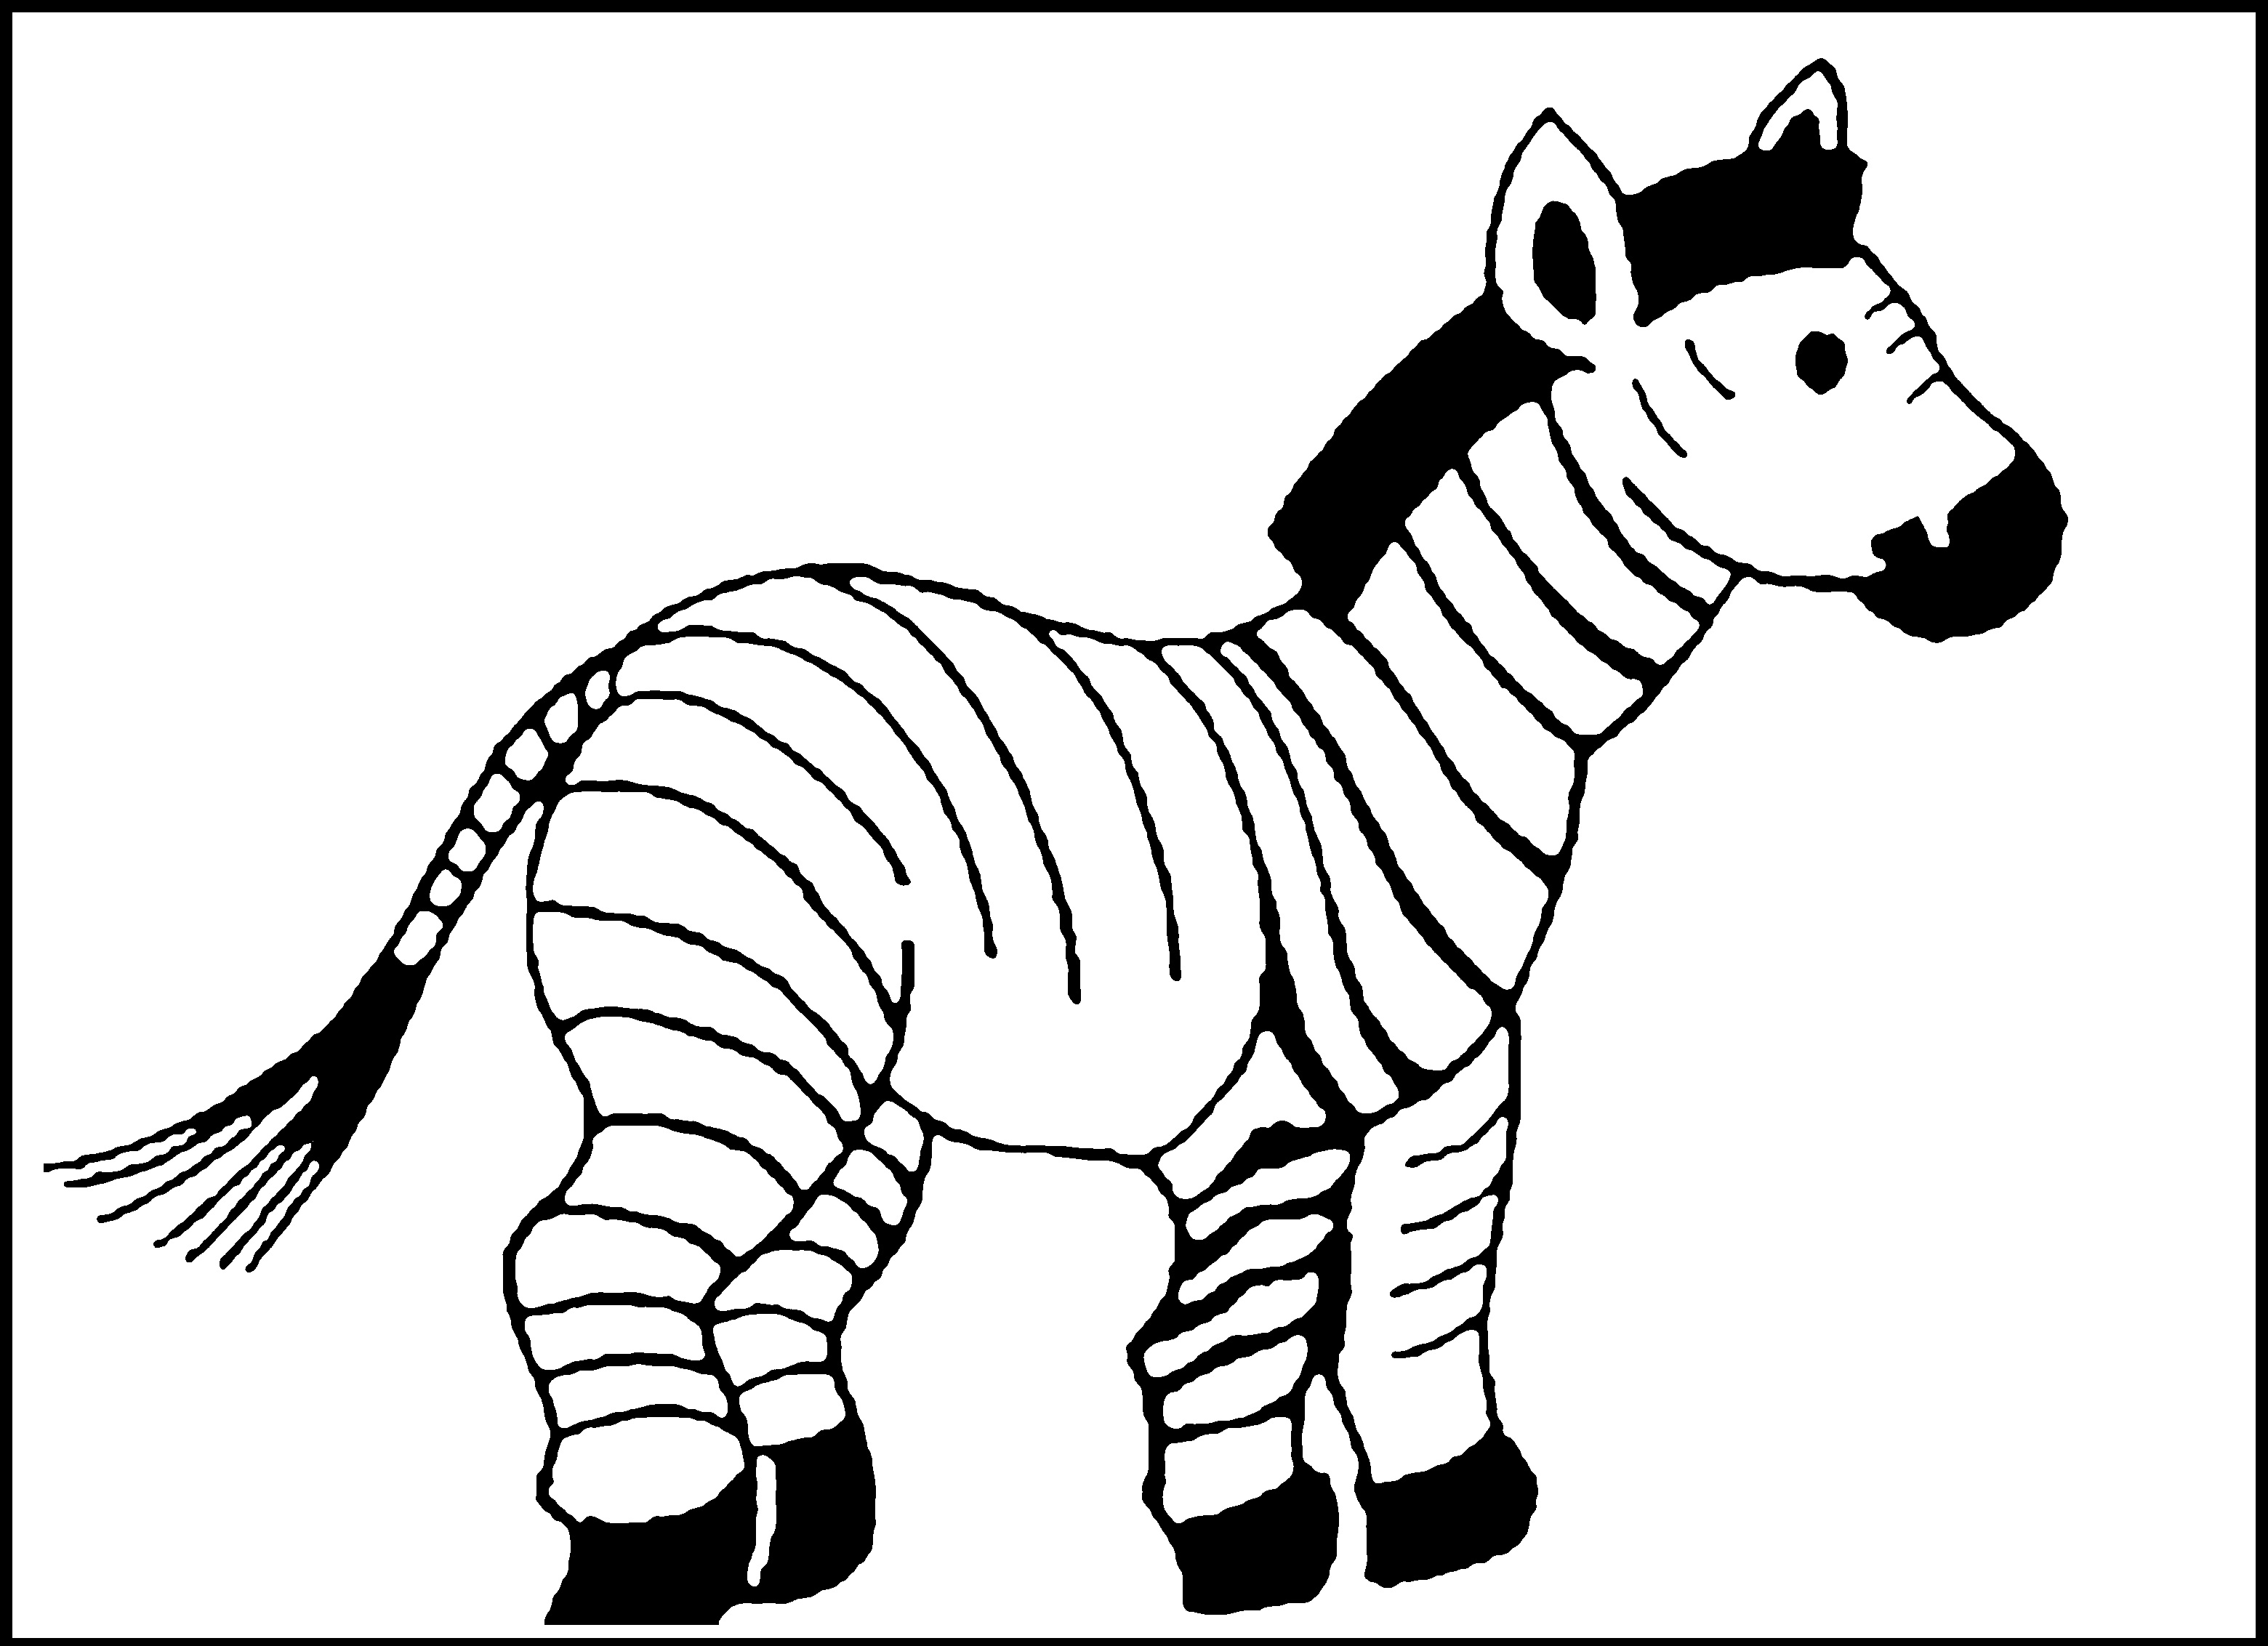 zebra coloring images zebra coloring pages lying down coloringstar clipart coloring zebra images